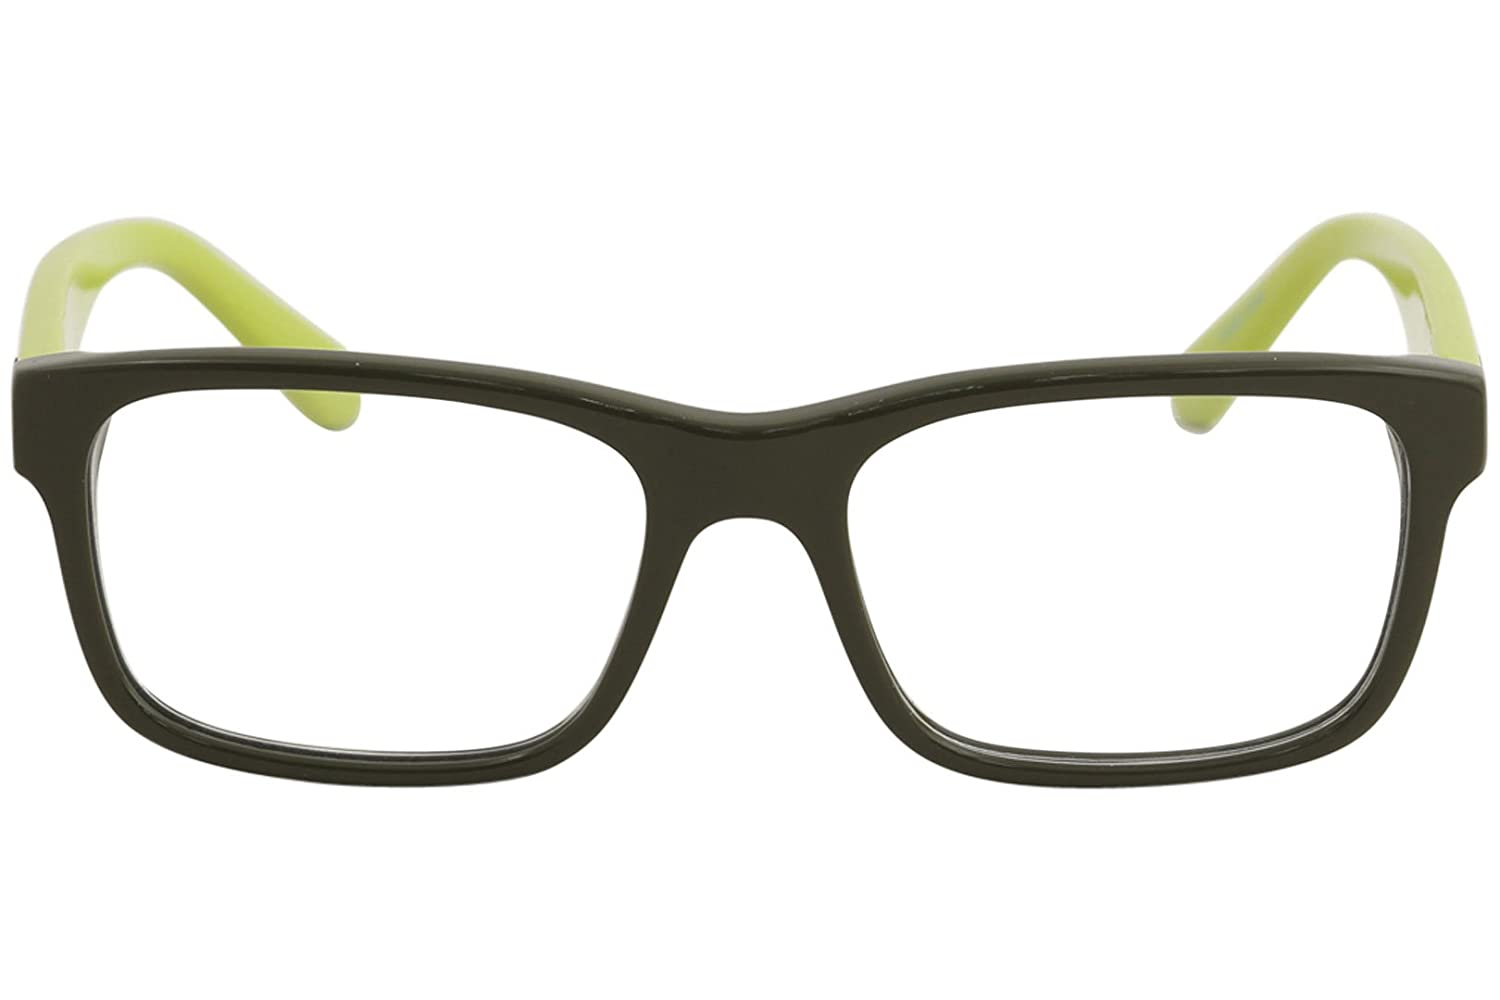 0f561459da6 Eyeglasses LACOSTE L 3612 318 OLIVE at Amazon Men s Clothing store